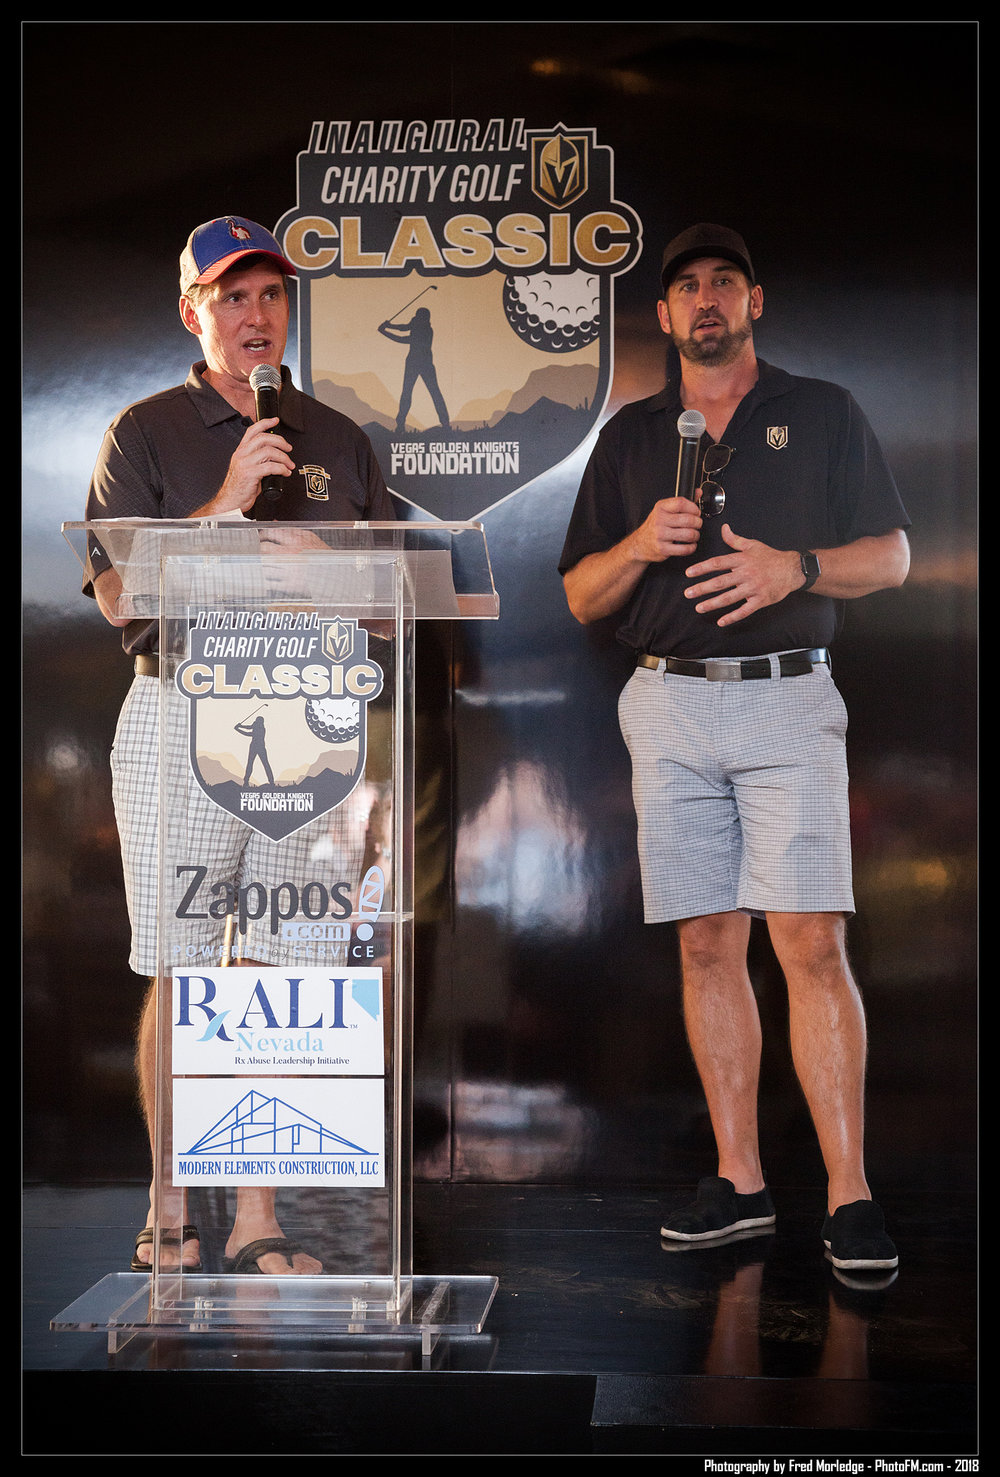 Vegas-Golden-Knights-Inaugural-Charity-Golf-Classic-Roaming-by-Fred-Morledge-PhotoFM-2018-287.jpg